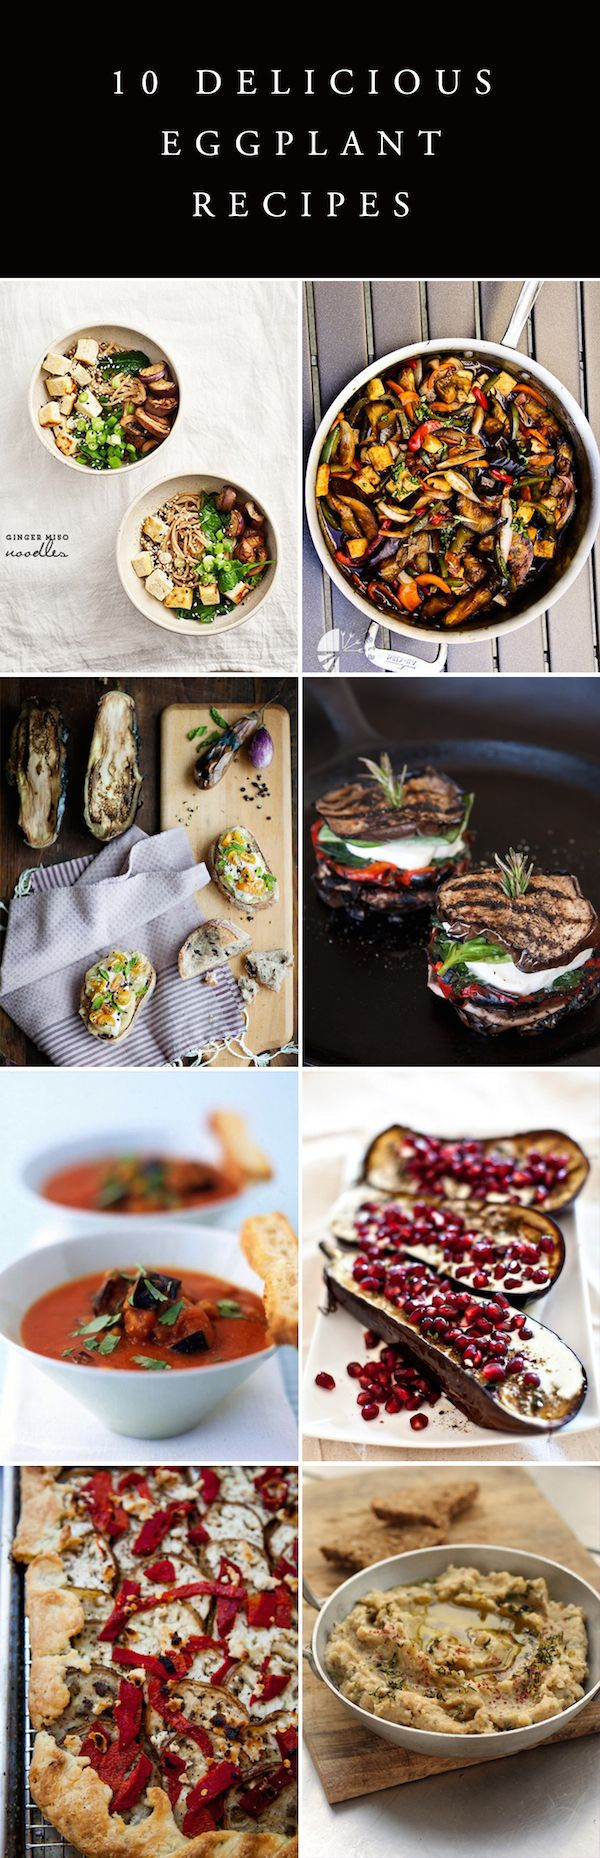 The best recipes using eggplants: grilled, roasted, & pureed in the most amazing baba ganoush!